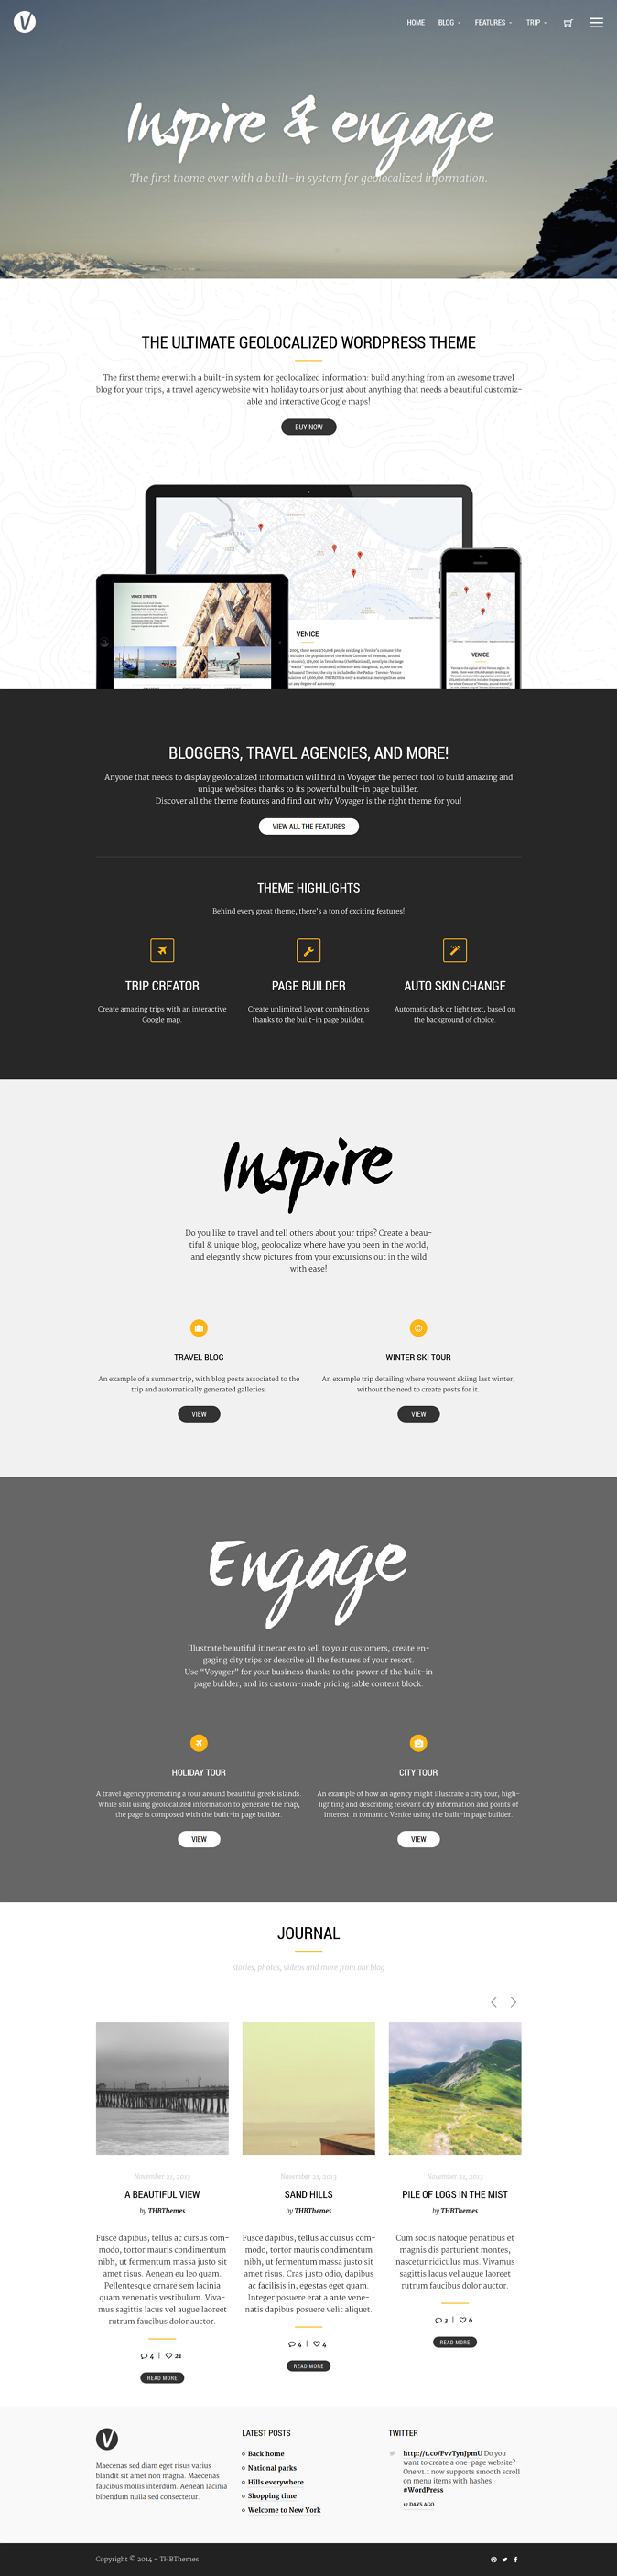 Voyager is an Multipurpose WordPress theme. Voyager WP is the first theme ever with a built in s ...